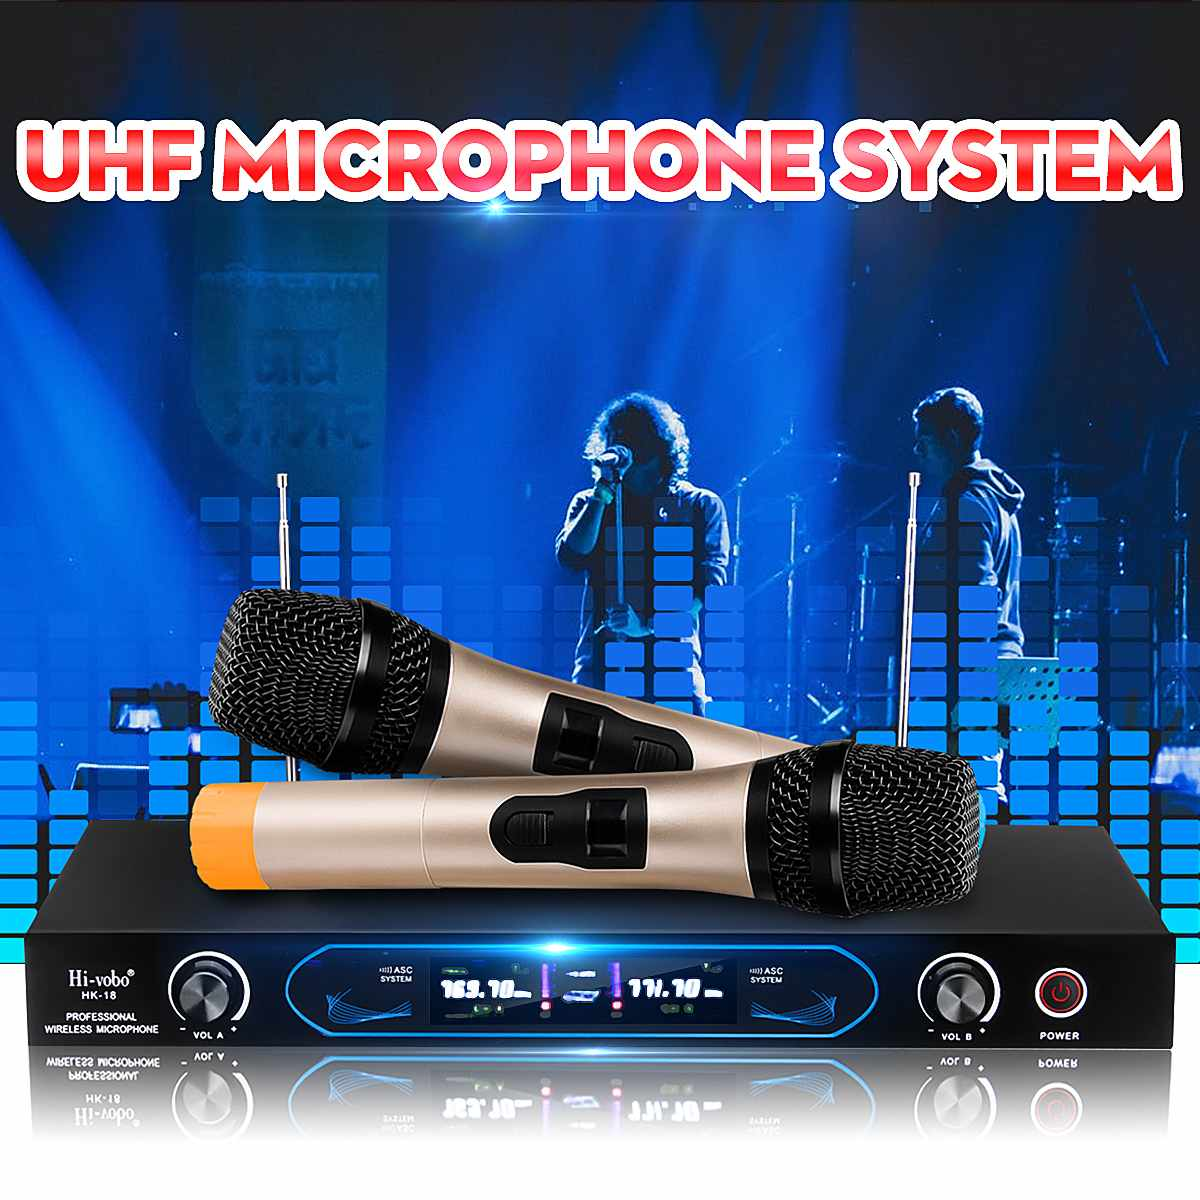 Professional Dual Cordless Wireless Microphone Microphones System with 2 Handhelds Mic 2 Channel Receiver For Home Karaoke PartyProfessional Dual Cordless Wireless Microphone Microphones System with 2 Handhelds Mic 2 Channel Receiver For Home Karaoke Party